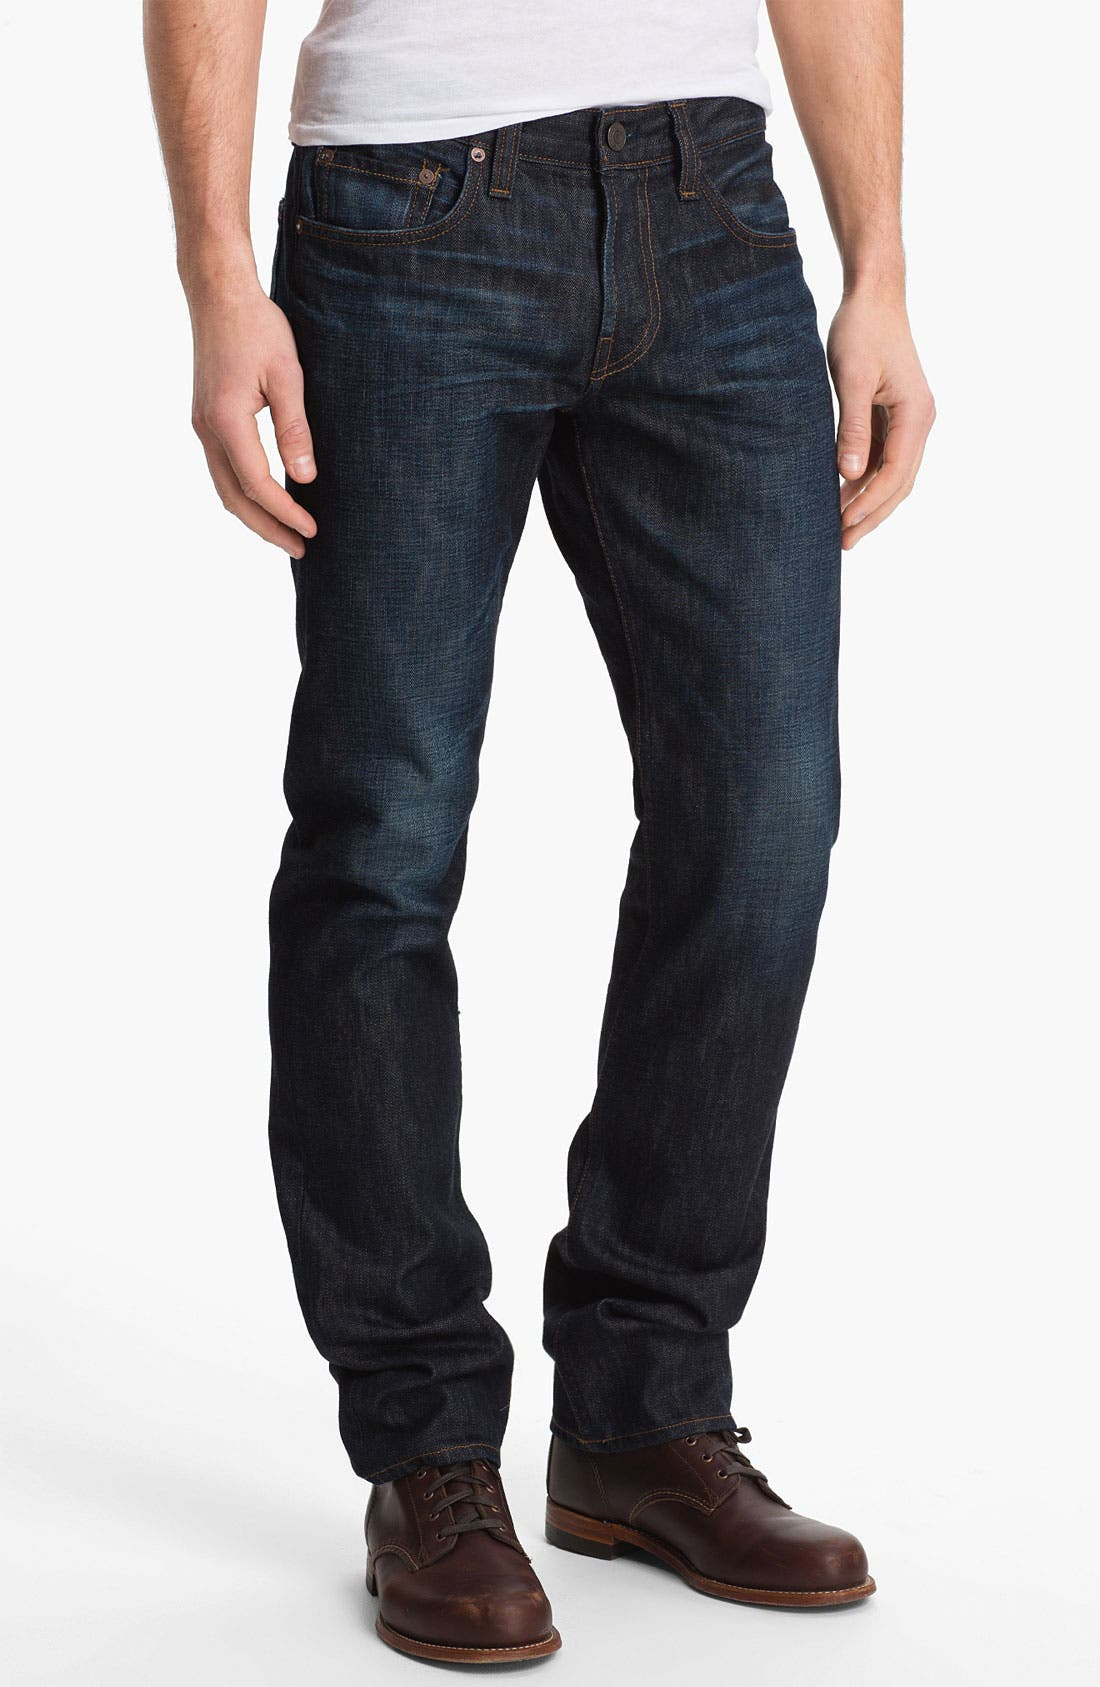 Alternate Image 1 Selected - J Brand 'Kane' Slim Fit Jeans (Atom)